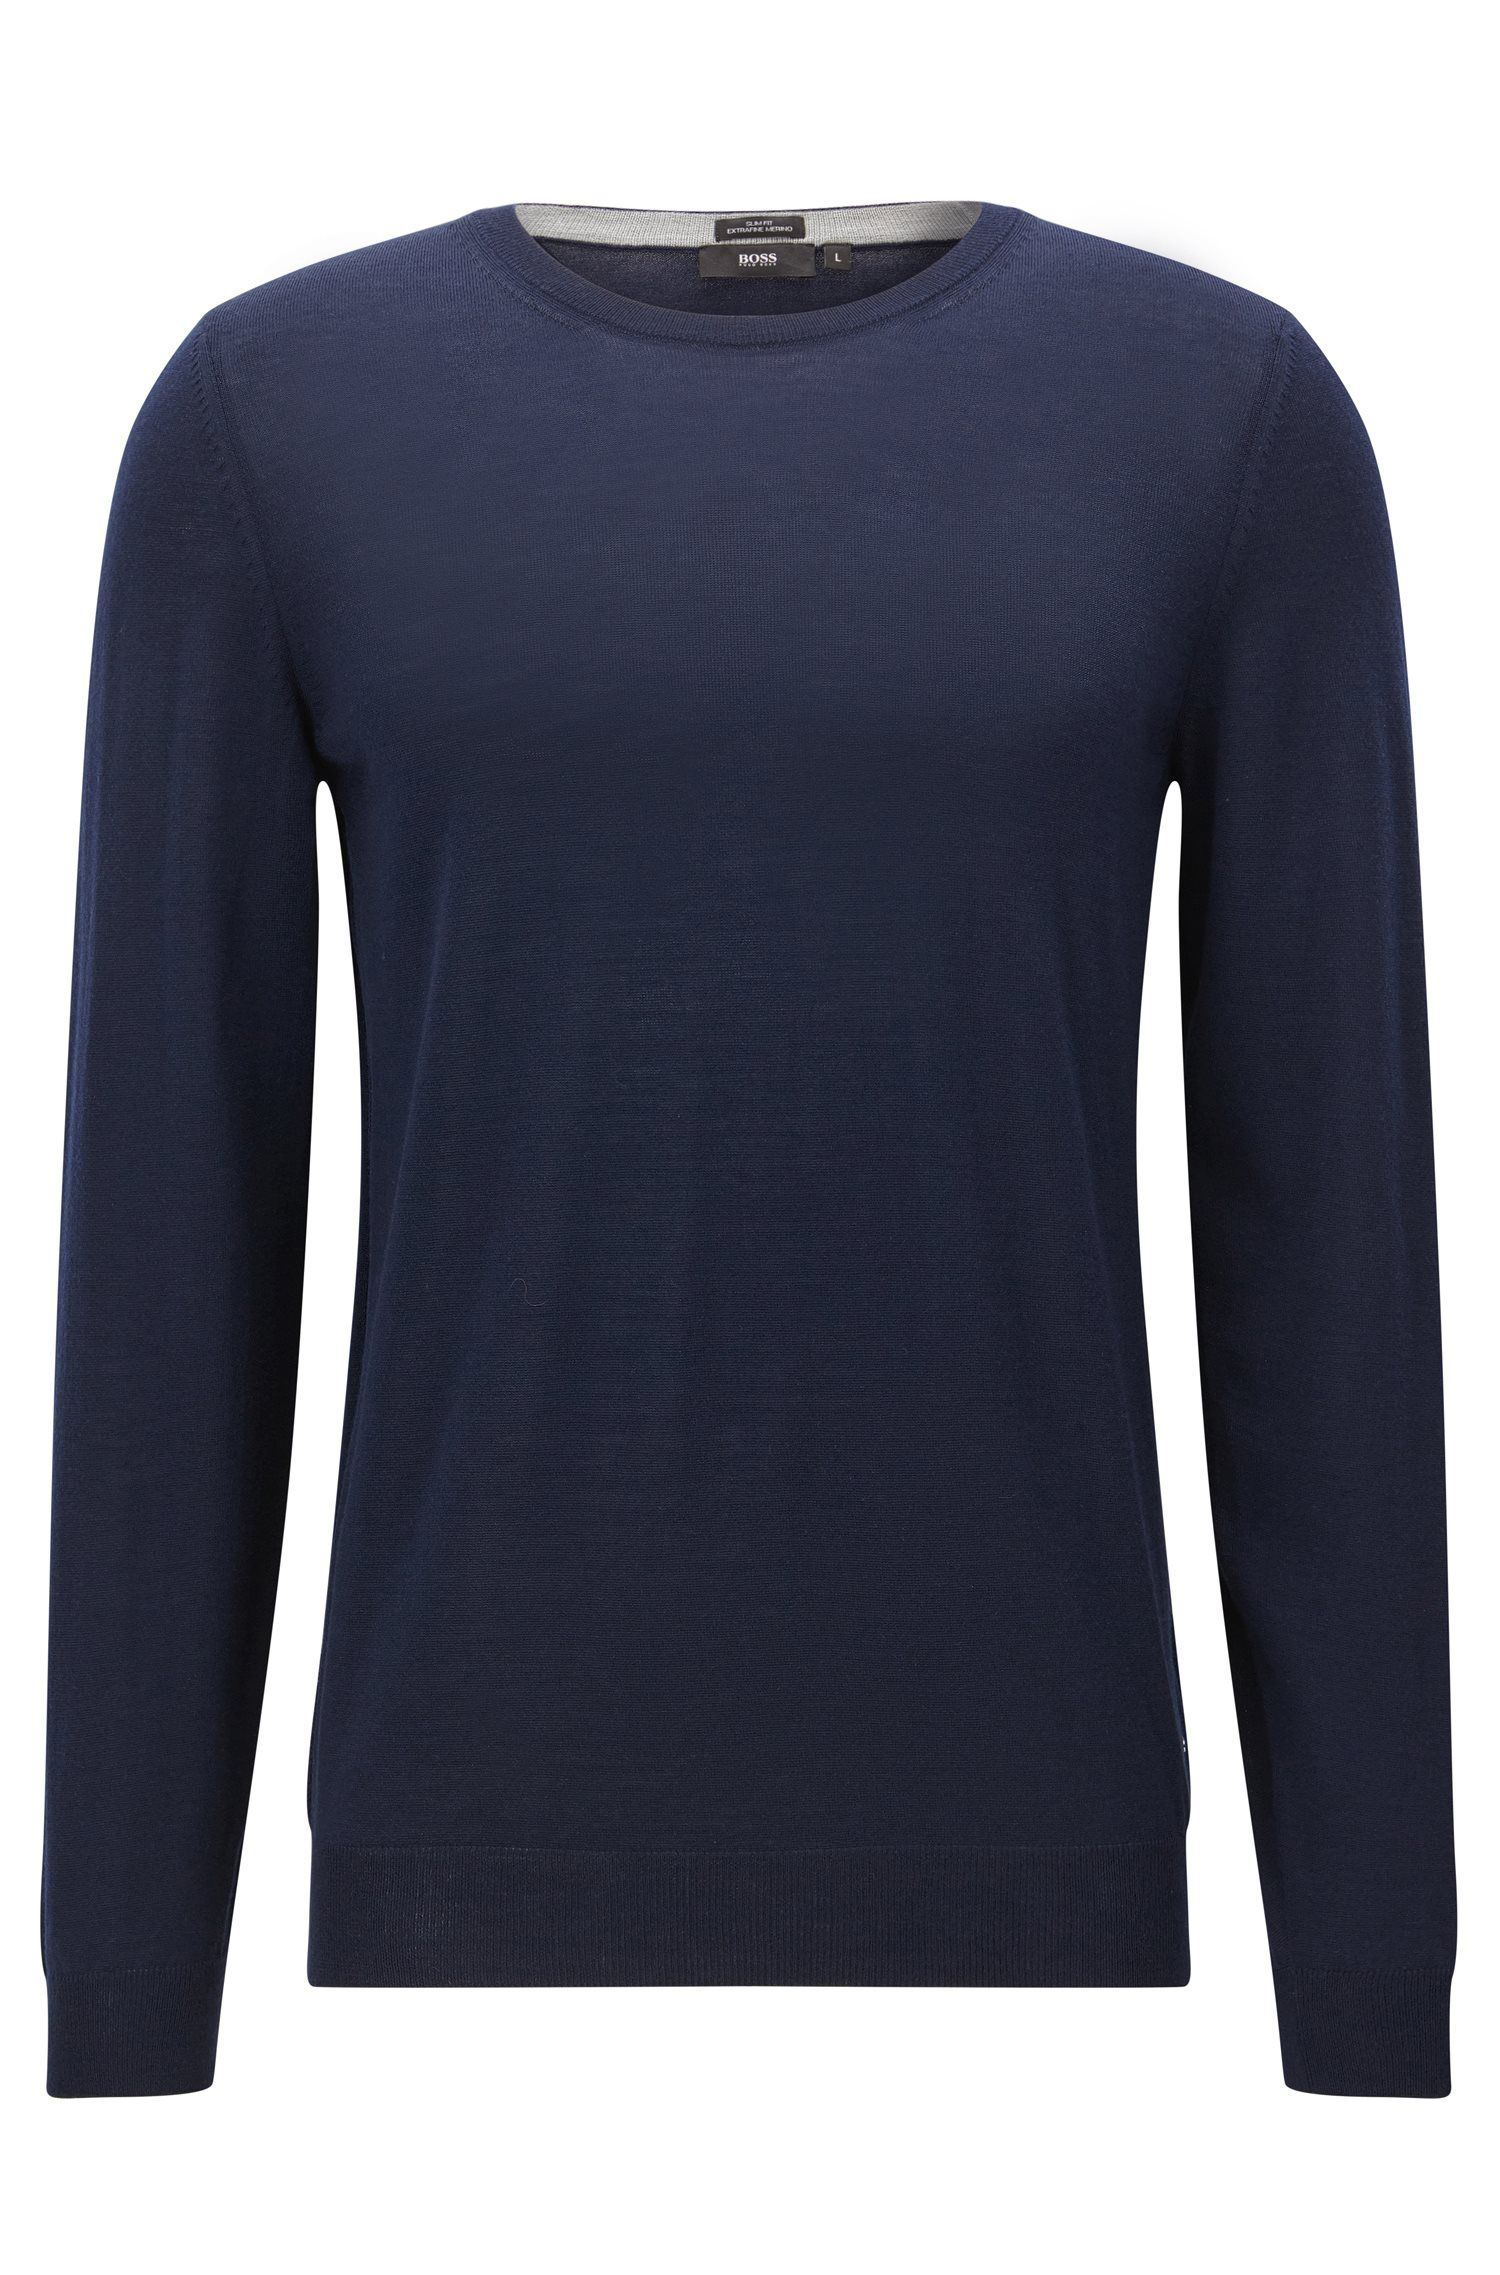 Maglione slim fit in lana vergine extra sottile